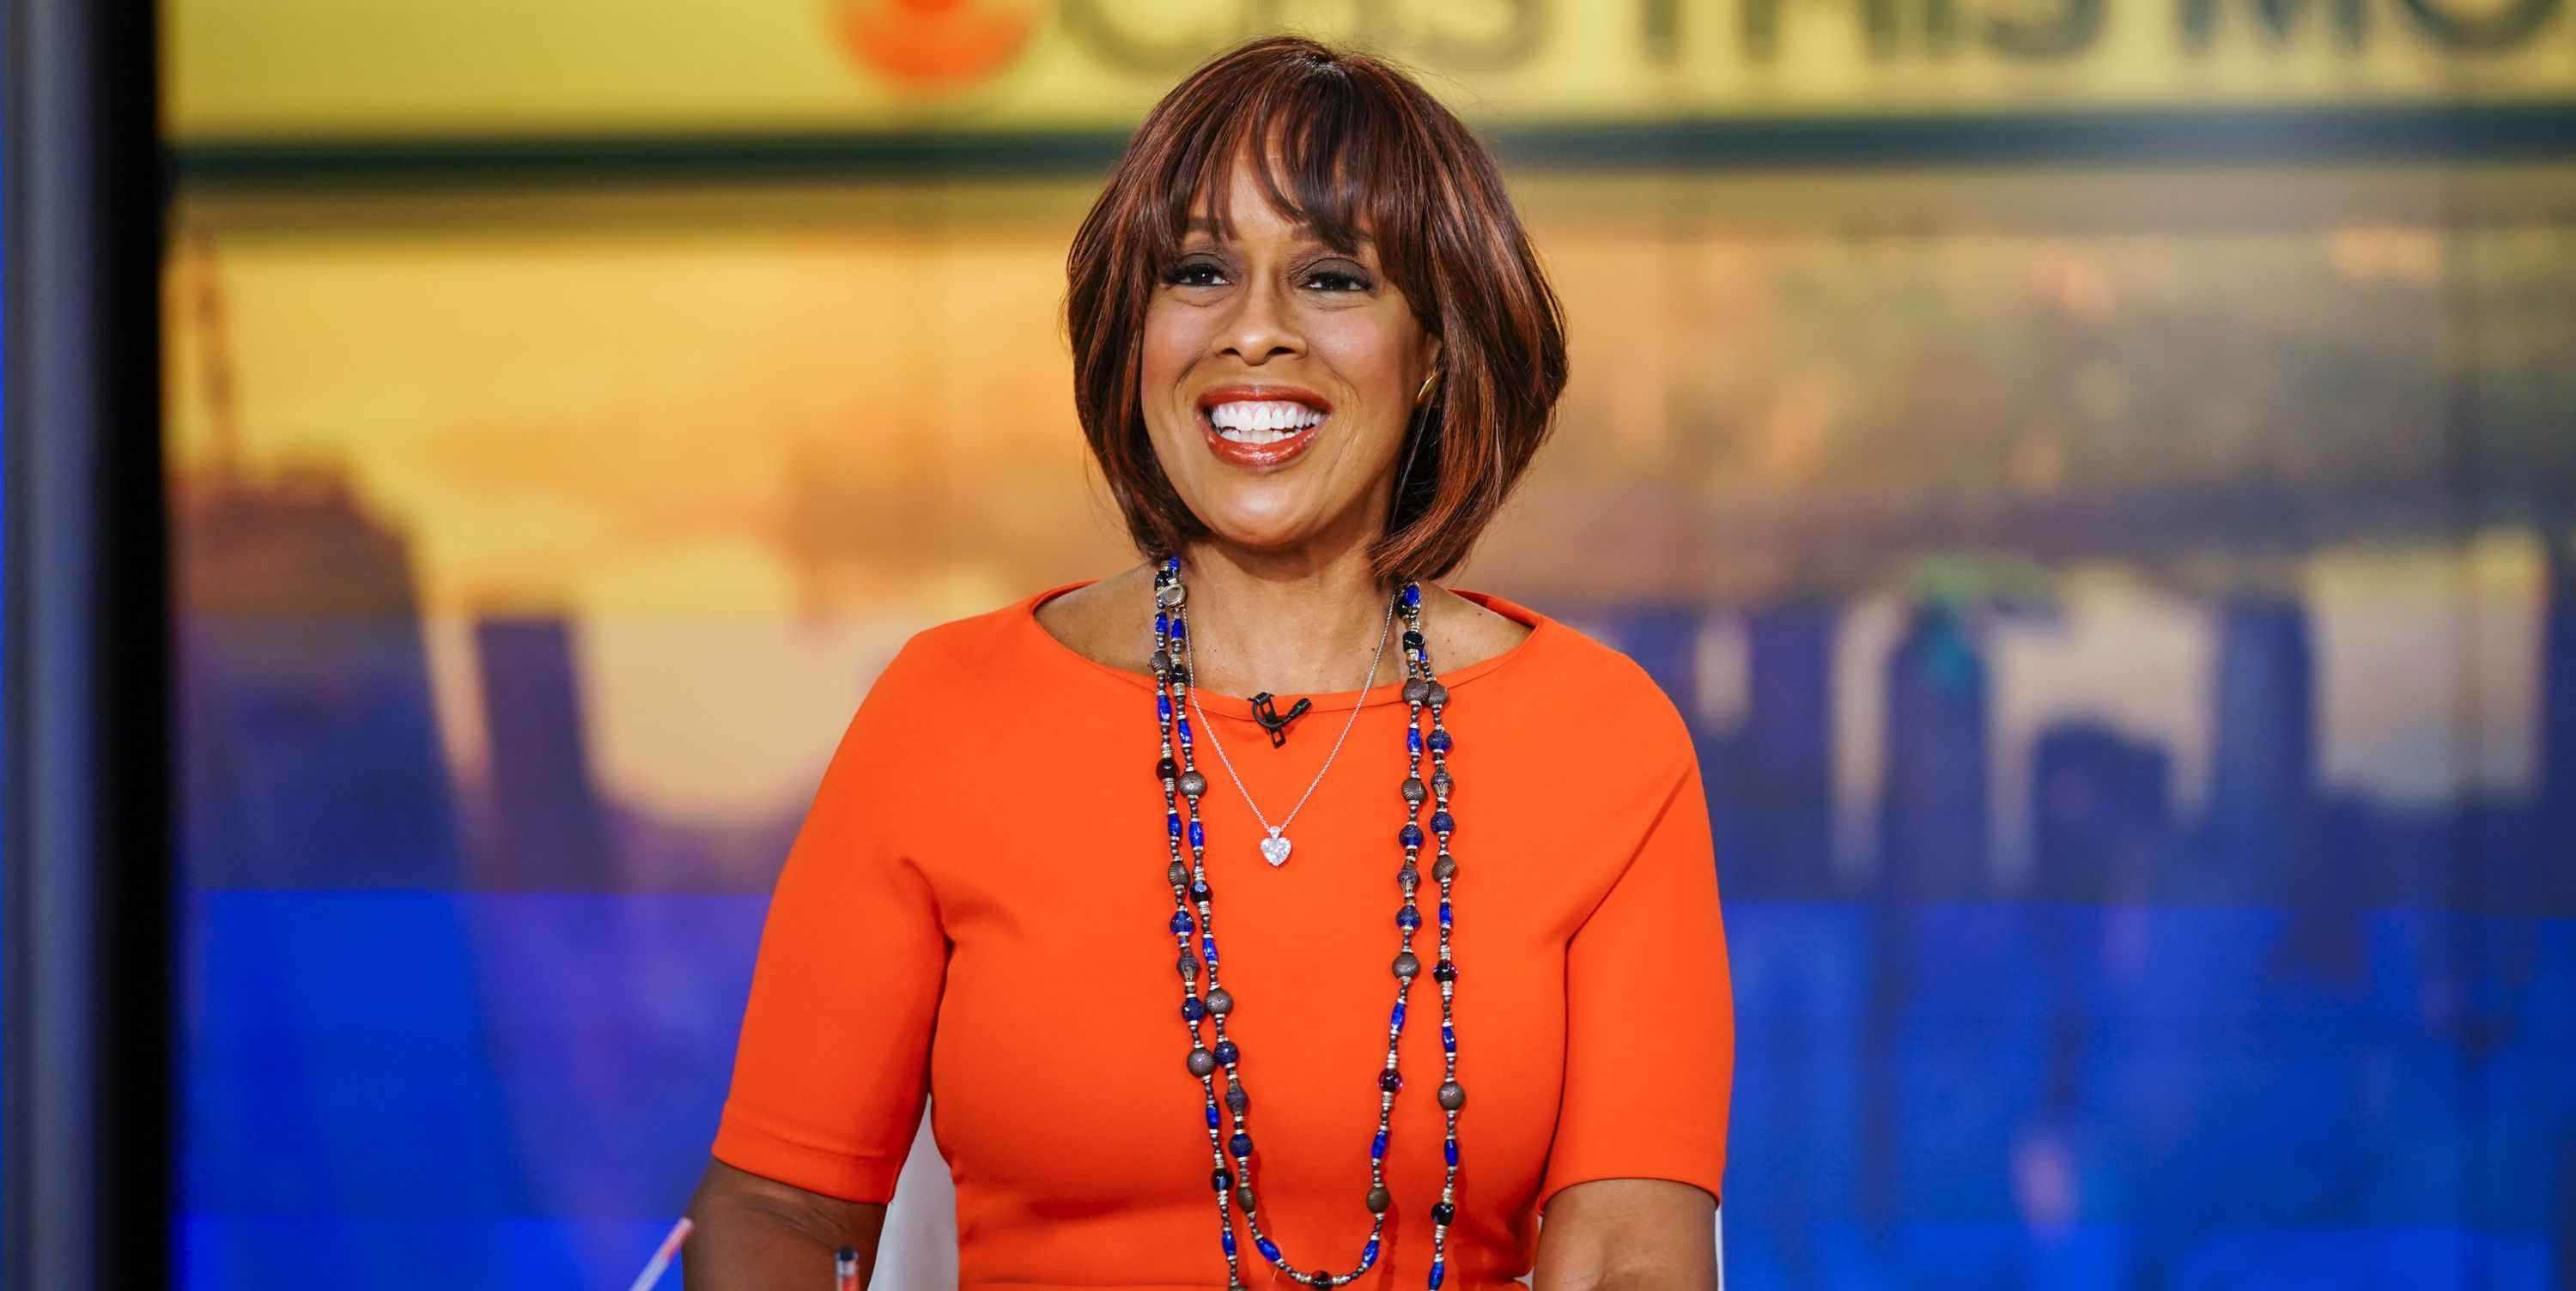 Are Gayle King's Necklaces Too Much? The Internet—and Oprah—Weigh in